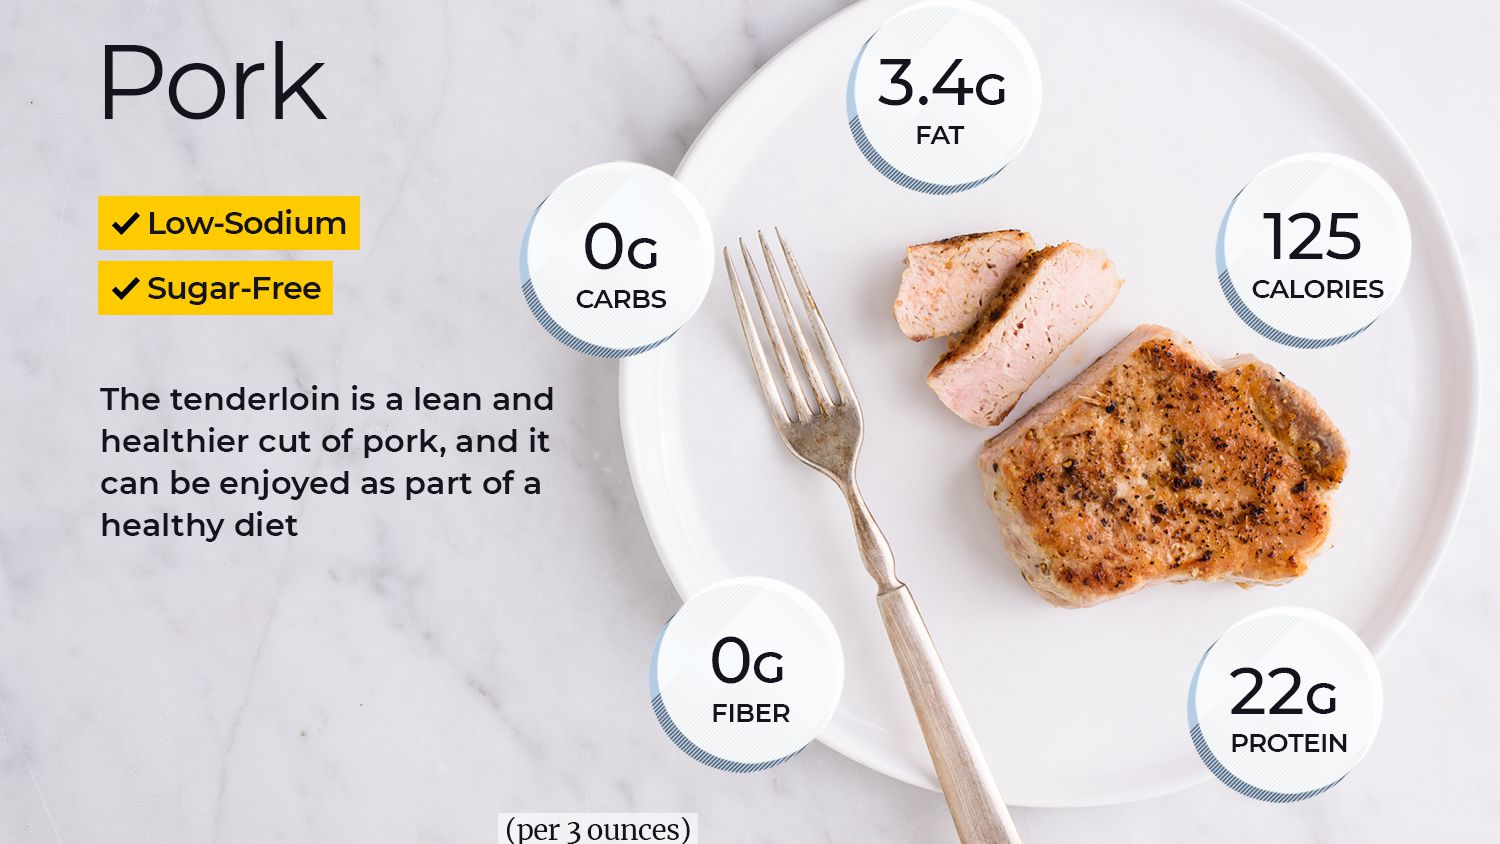 Pork Nutrition, Calories, and Health Benefits